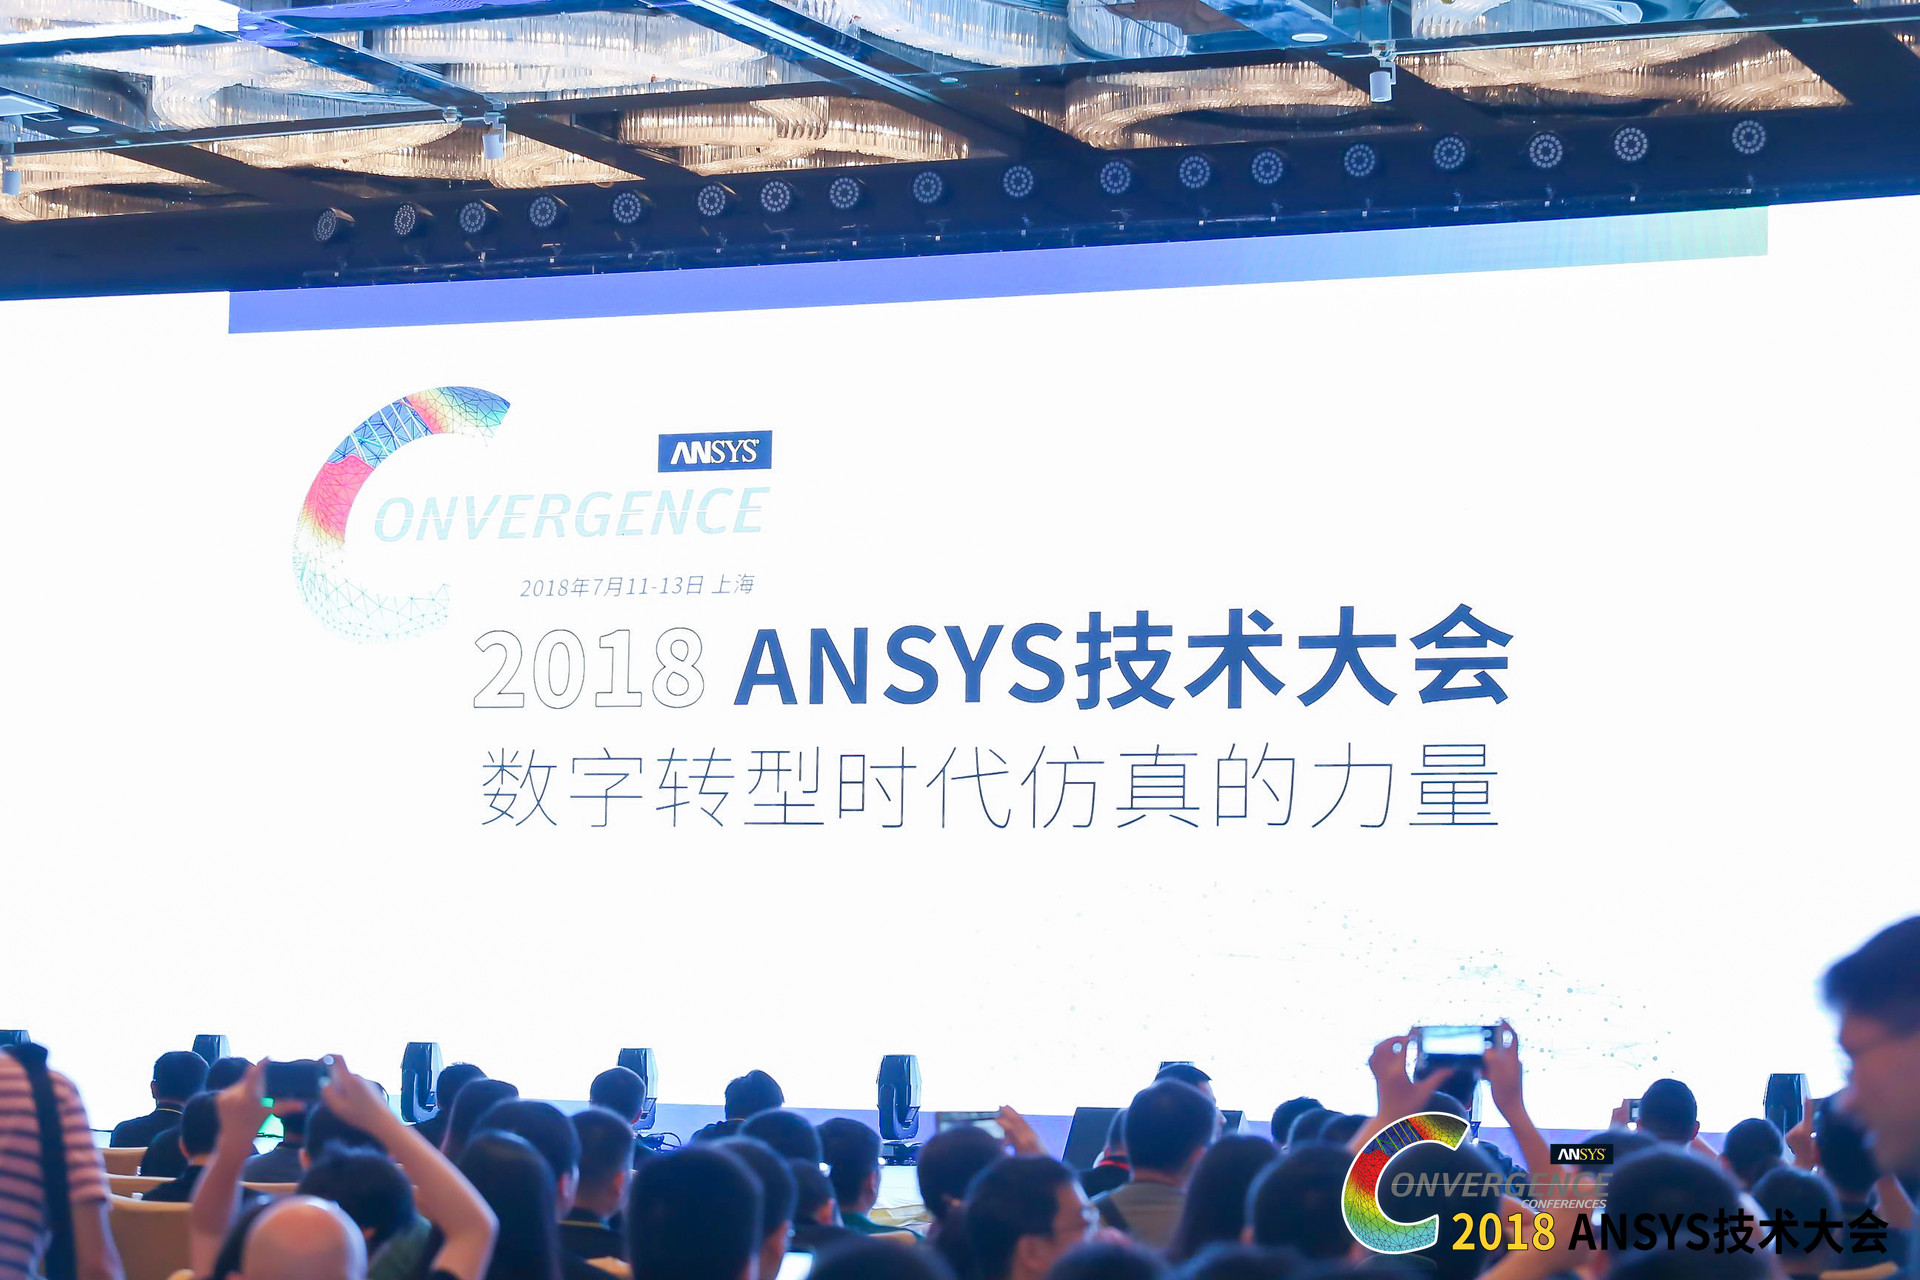 ANSYS Conference